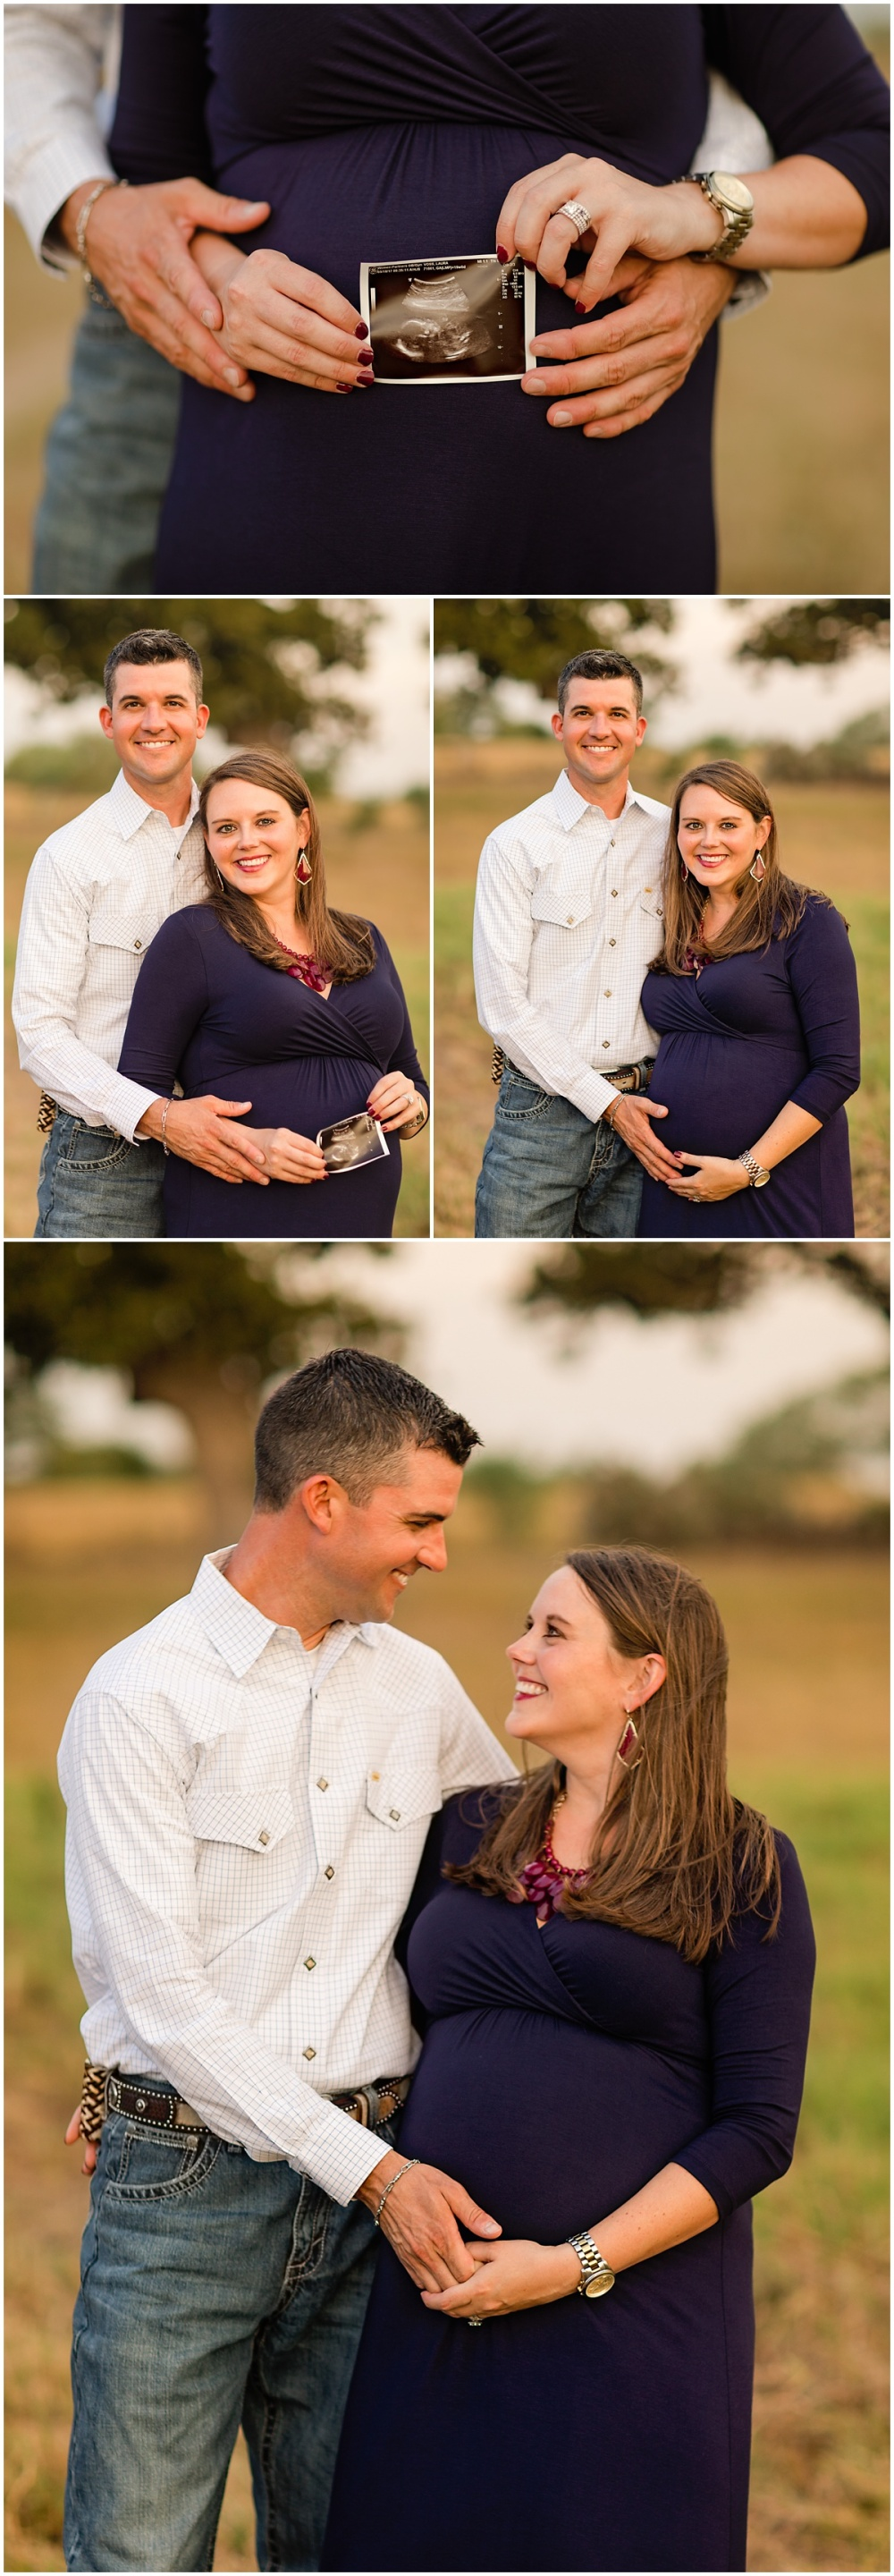 Family-Children-Portraits-Maternity-Photos-San-Antonio-Hill-Country-Texas-Carly-Barton-Photography_0005.jpg